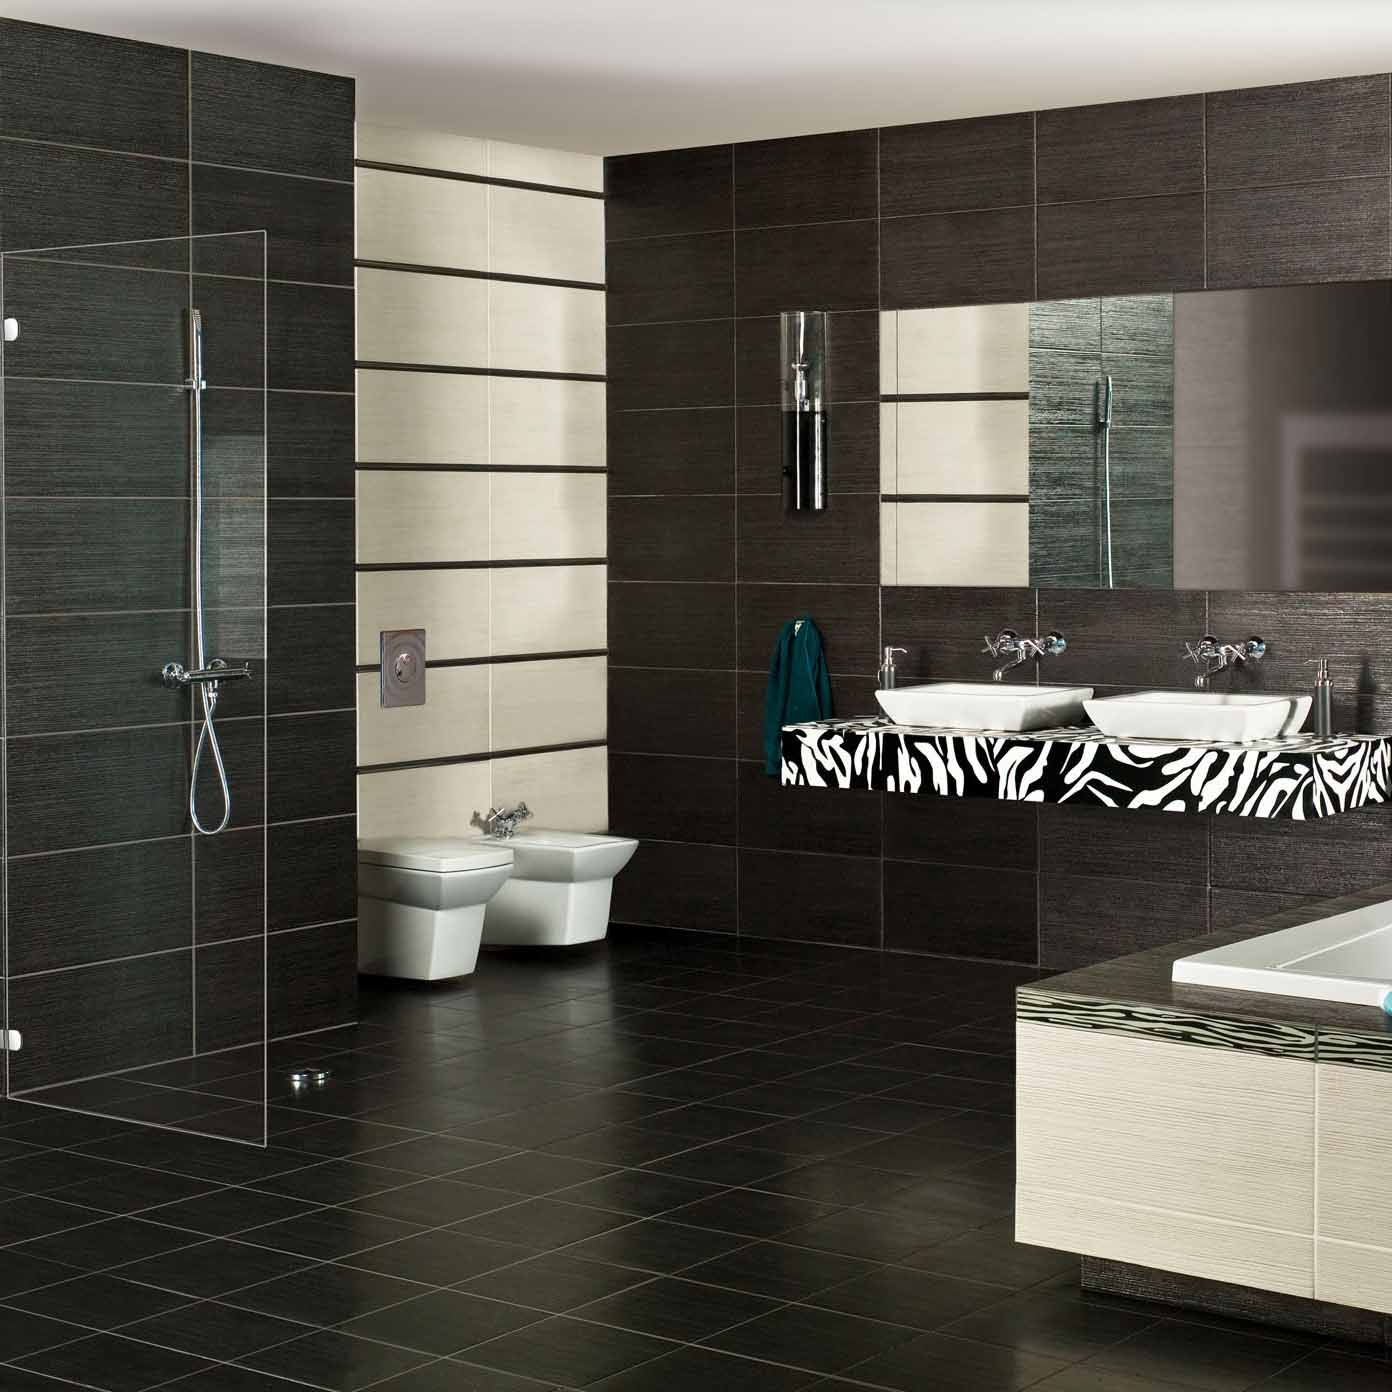 Metallic Black Porcelain Tile - Crown Tiles